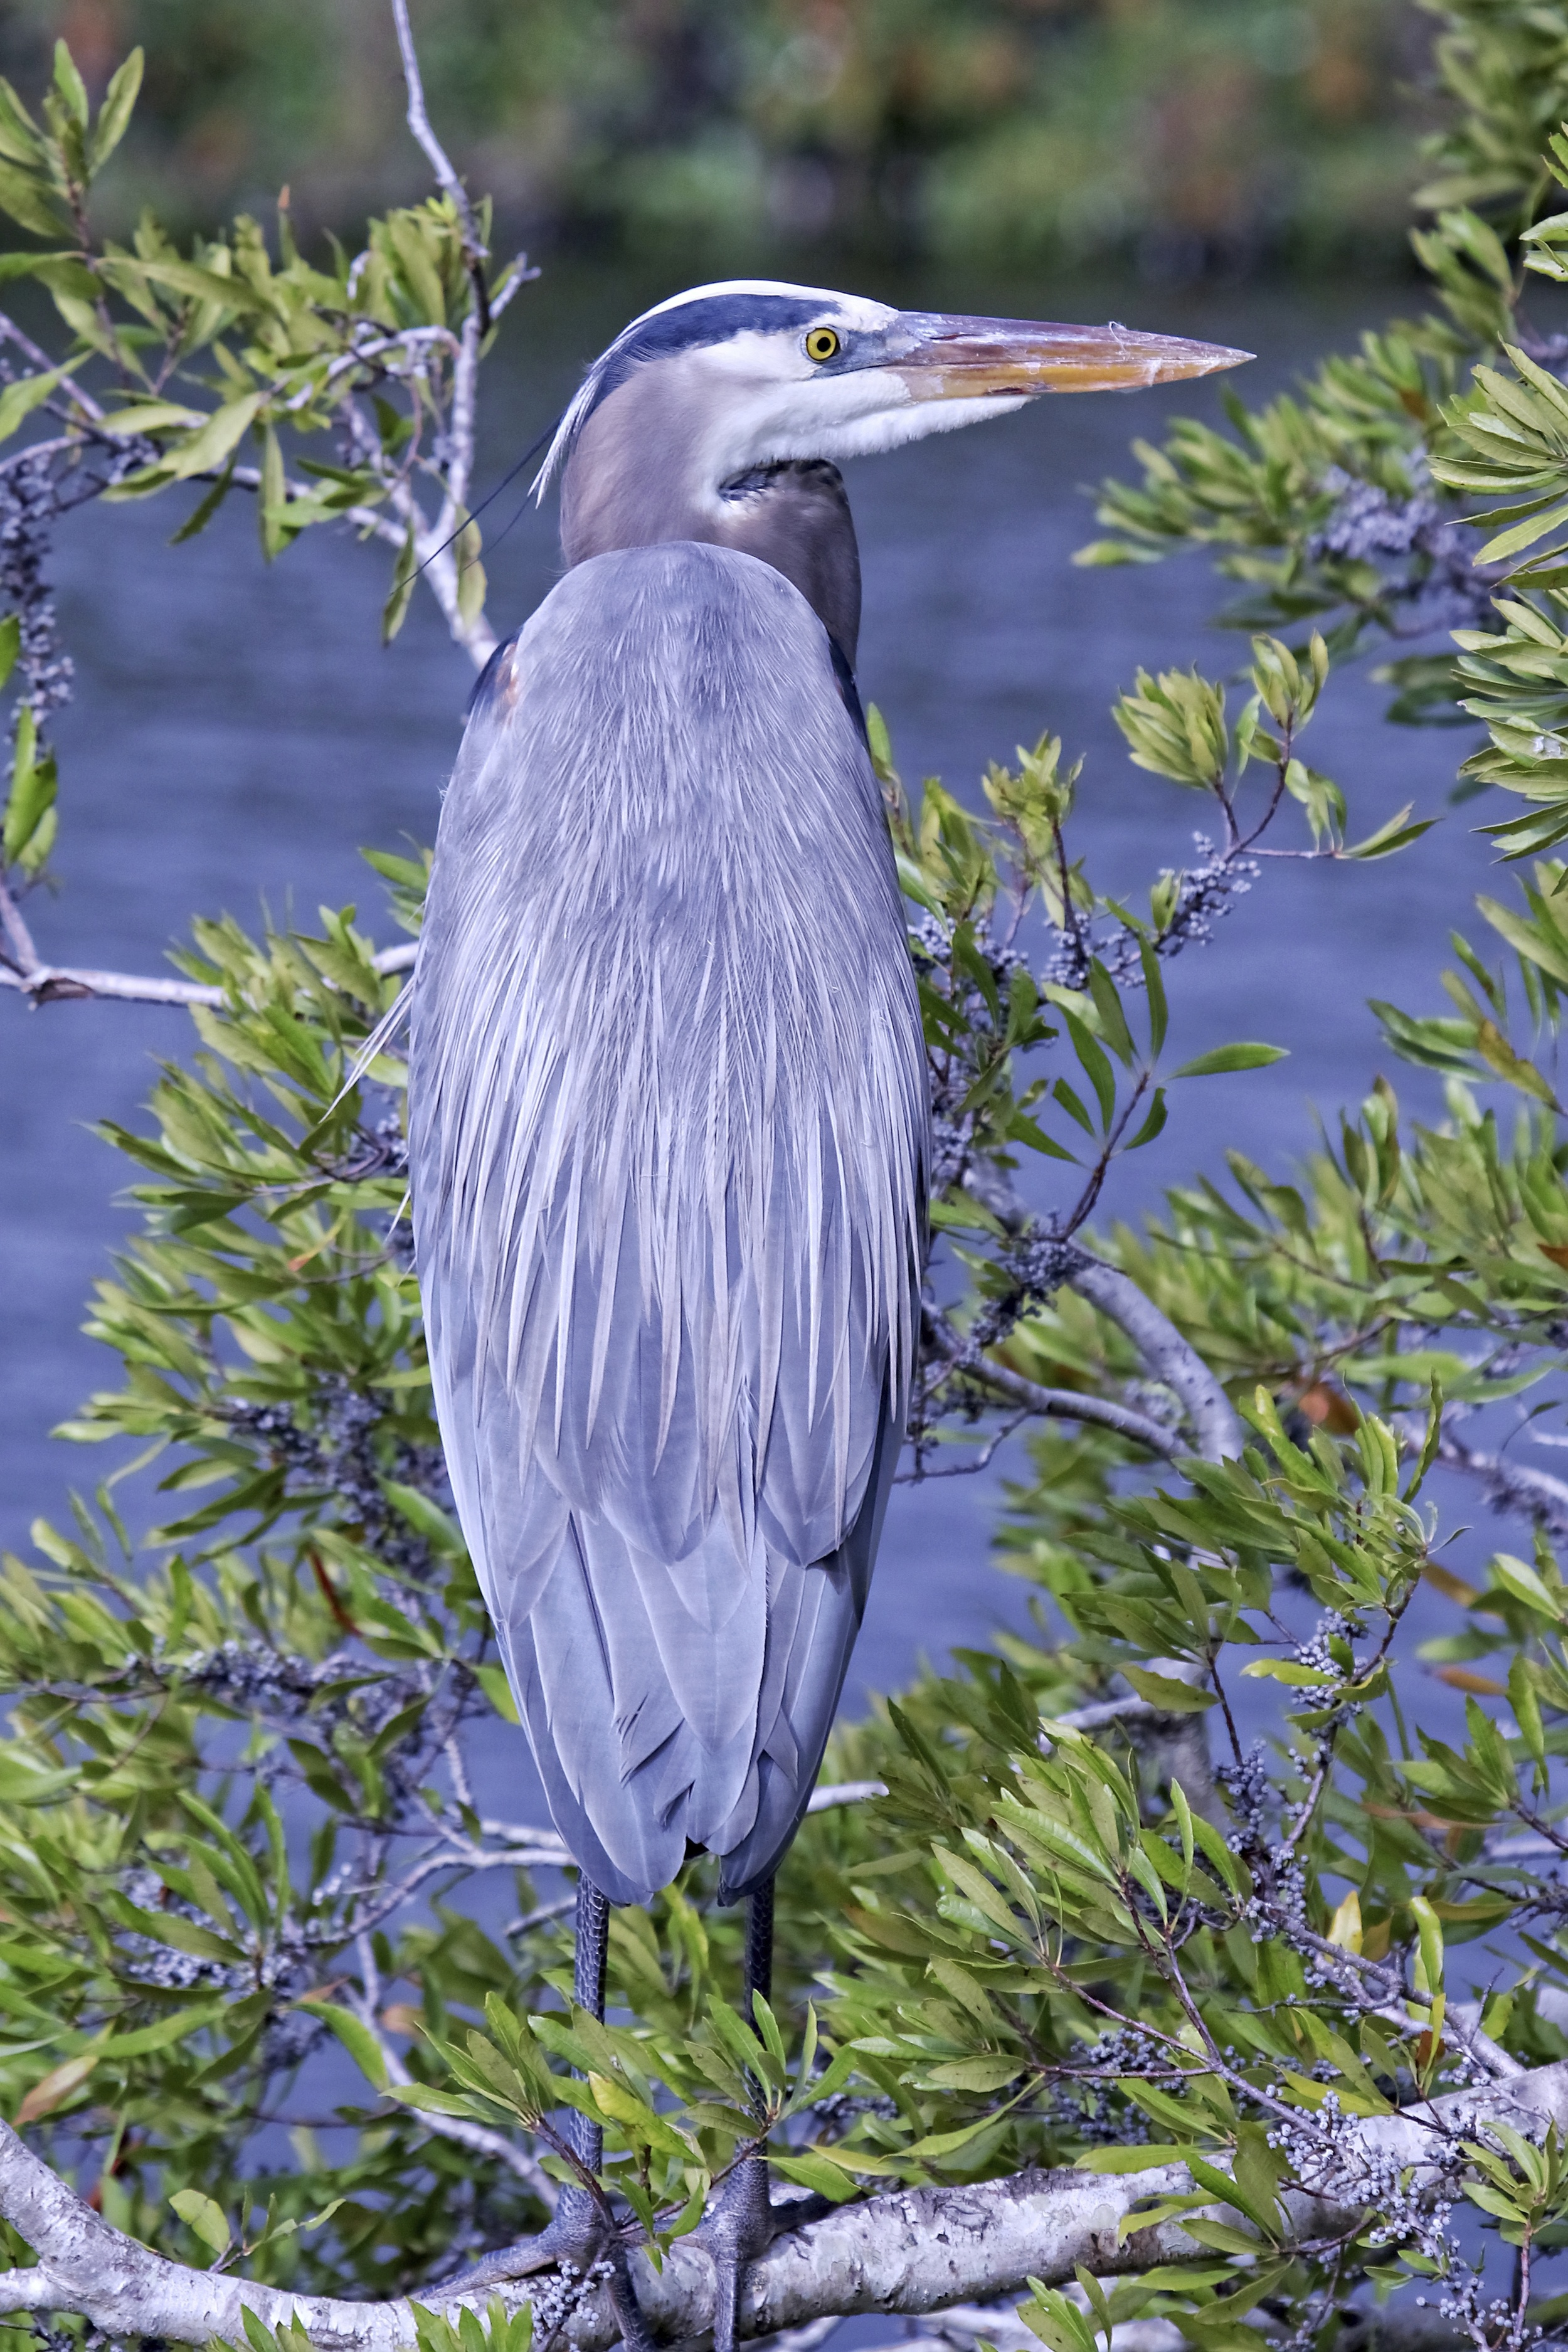 This Great Blue Heron looks a lot like Santa..